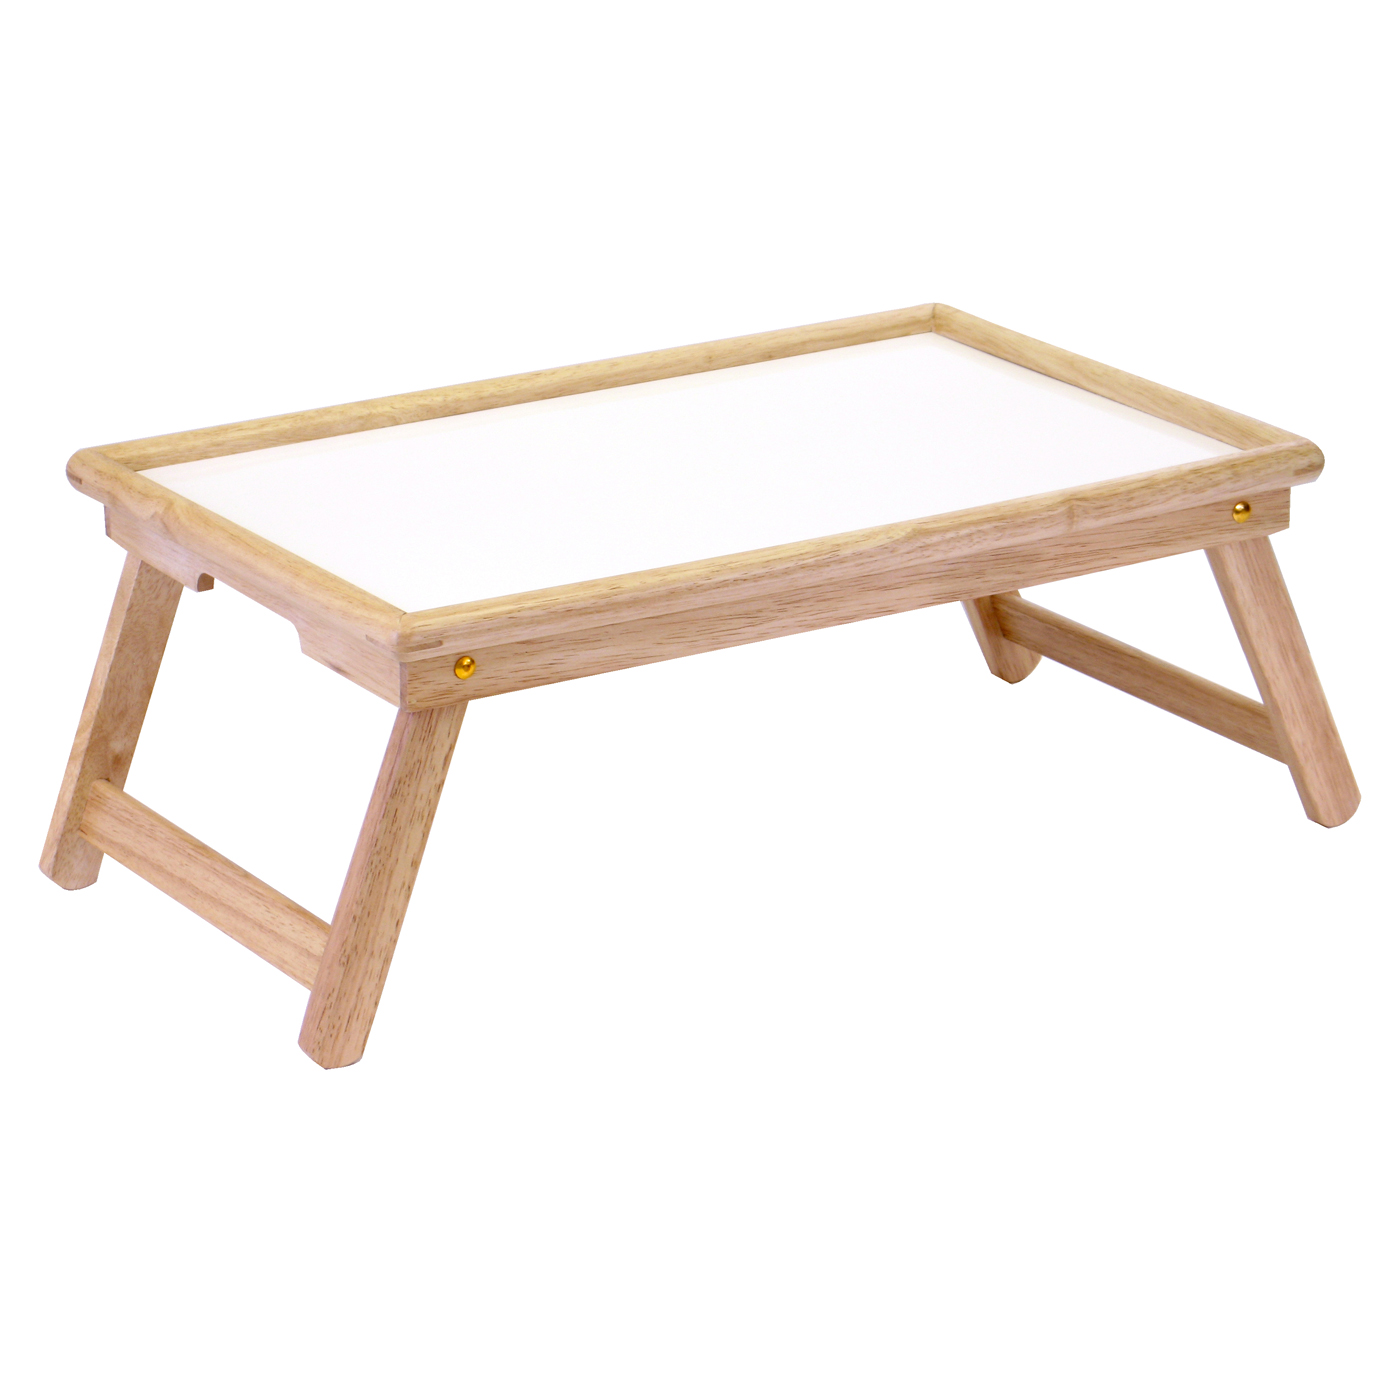 Breakfast Bed Tray With Notched Handle Cheap Home Store